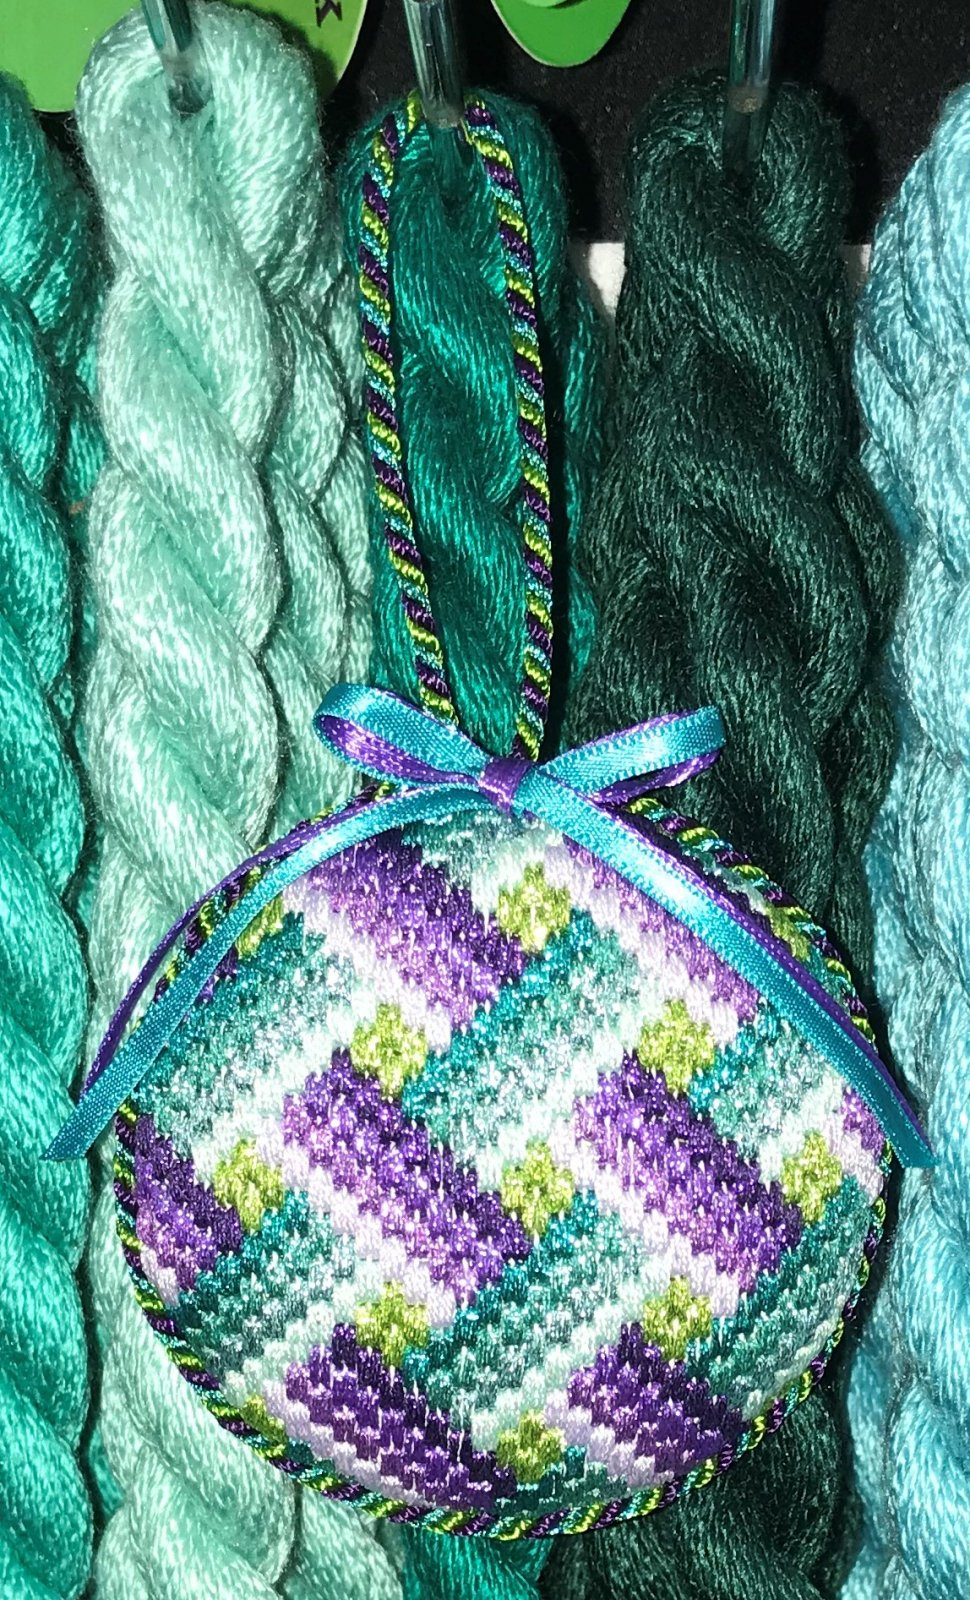 Purple & Teal Ribbons Ornament - Stitched by Deby T.